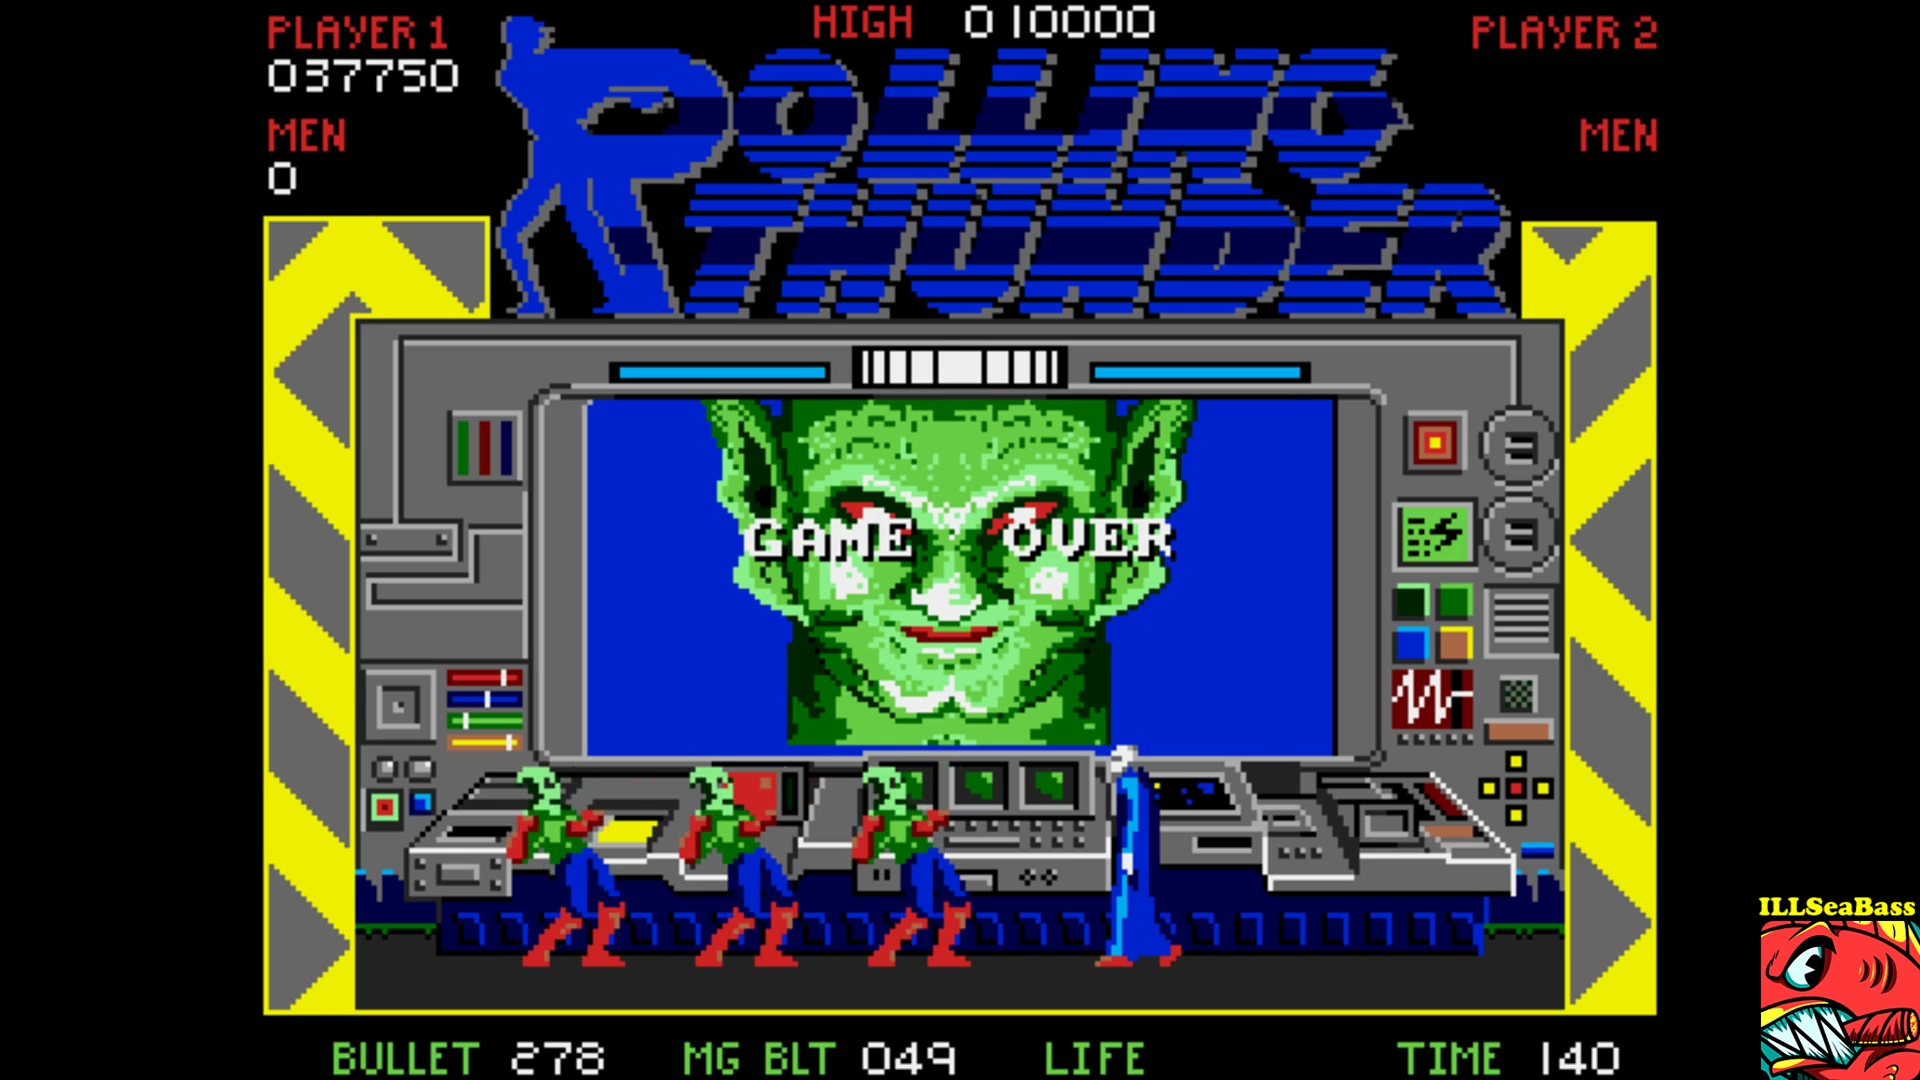 ILLSeaBass: Rolling Thunder (Amiga Emulated) 37,750 points on 2017-11-02 01:12:29